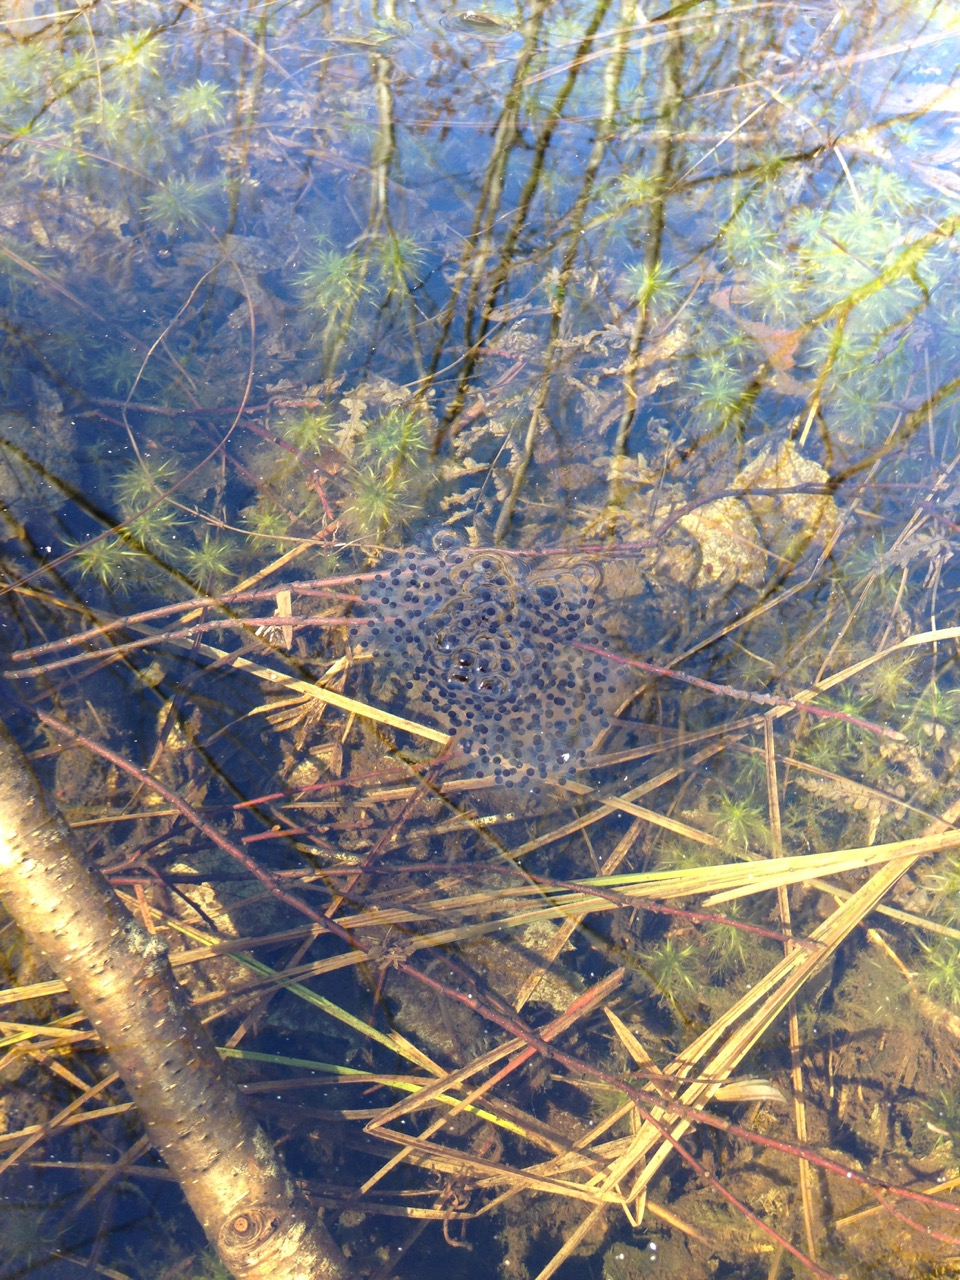 Frog spawn at Moose Hill.